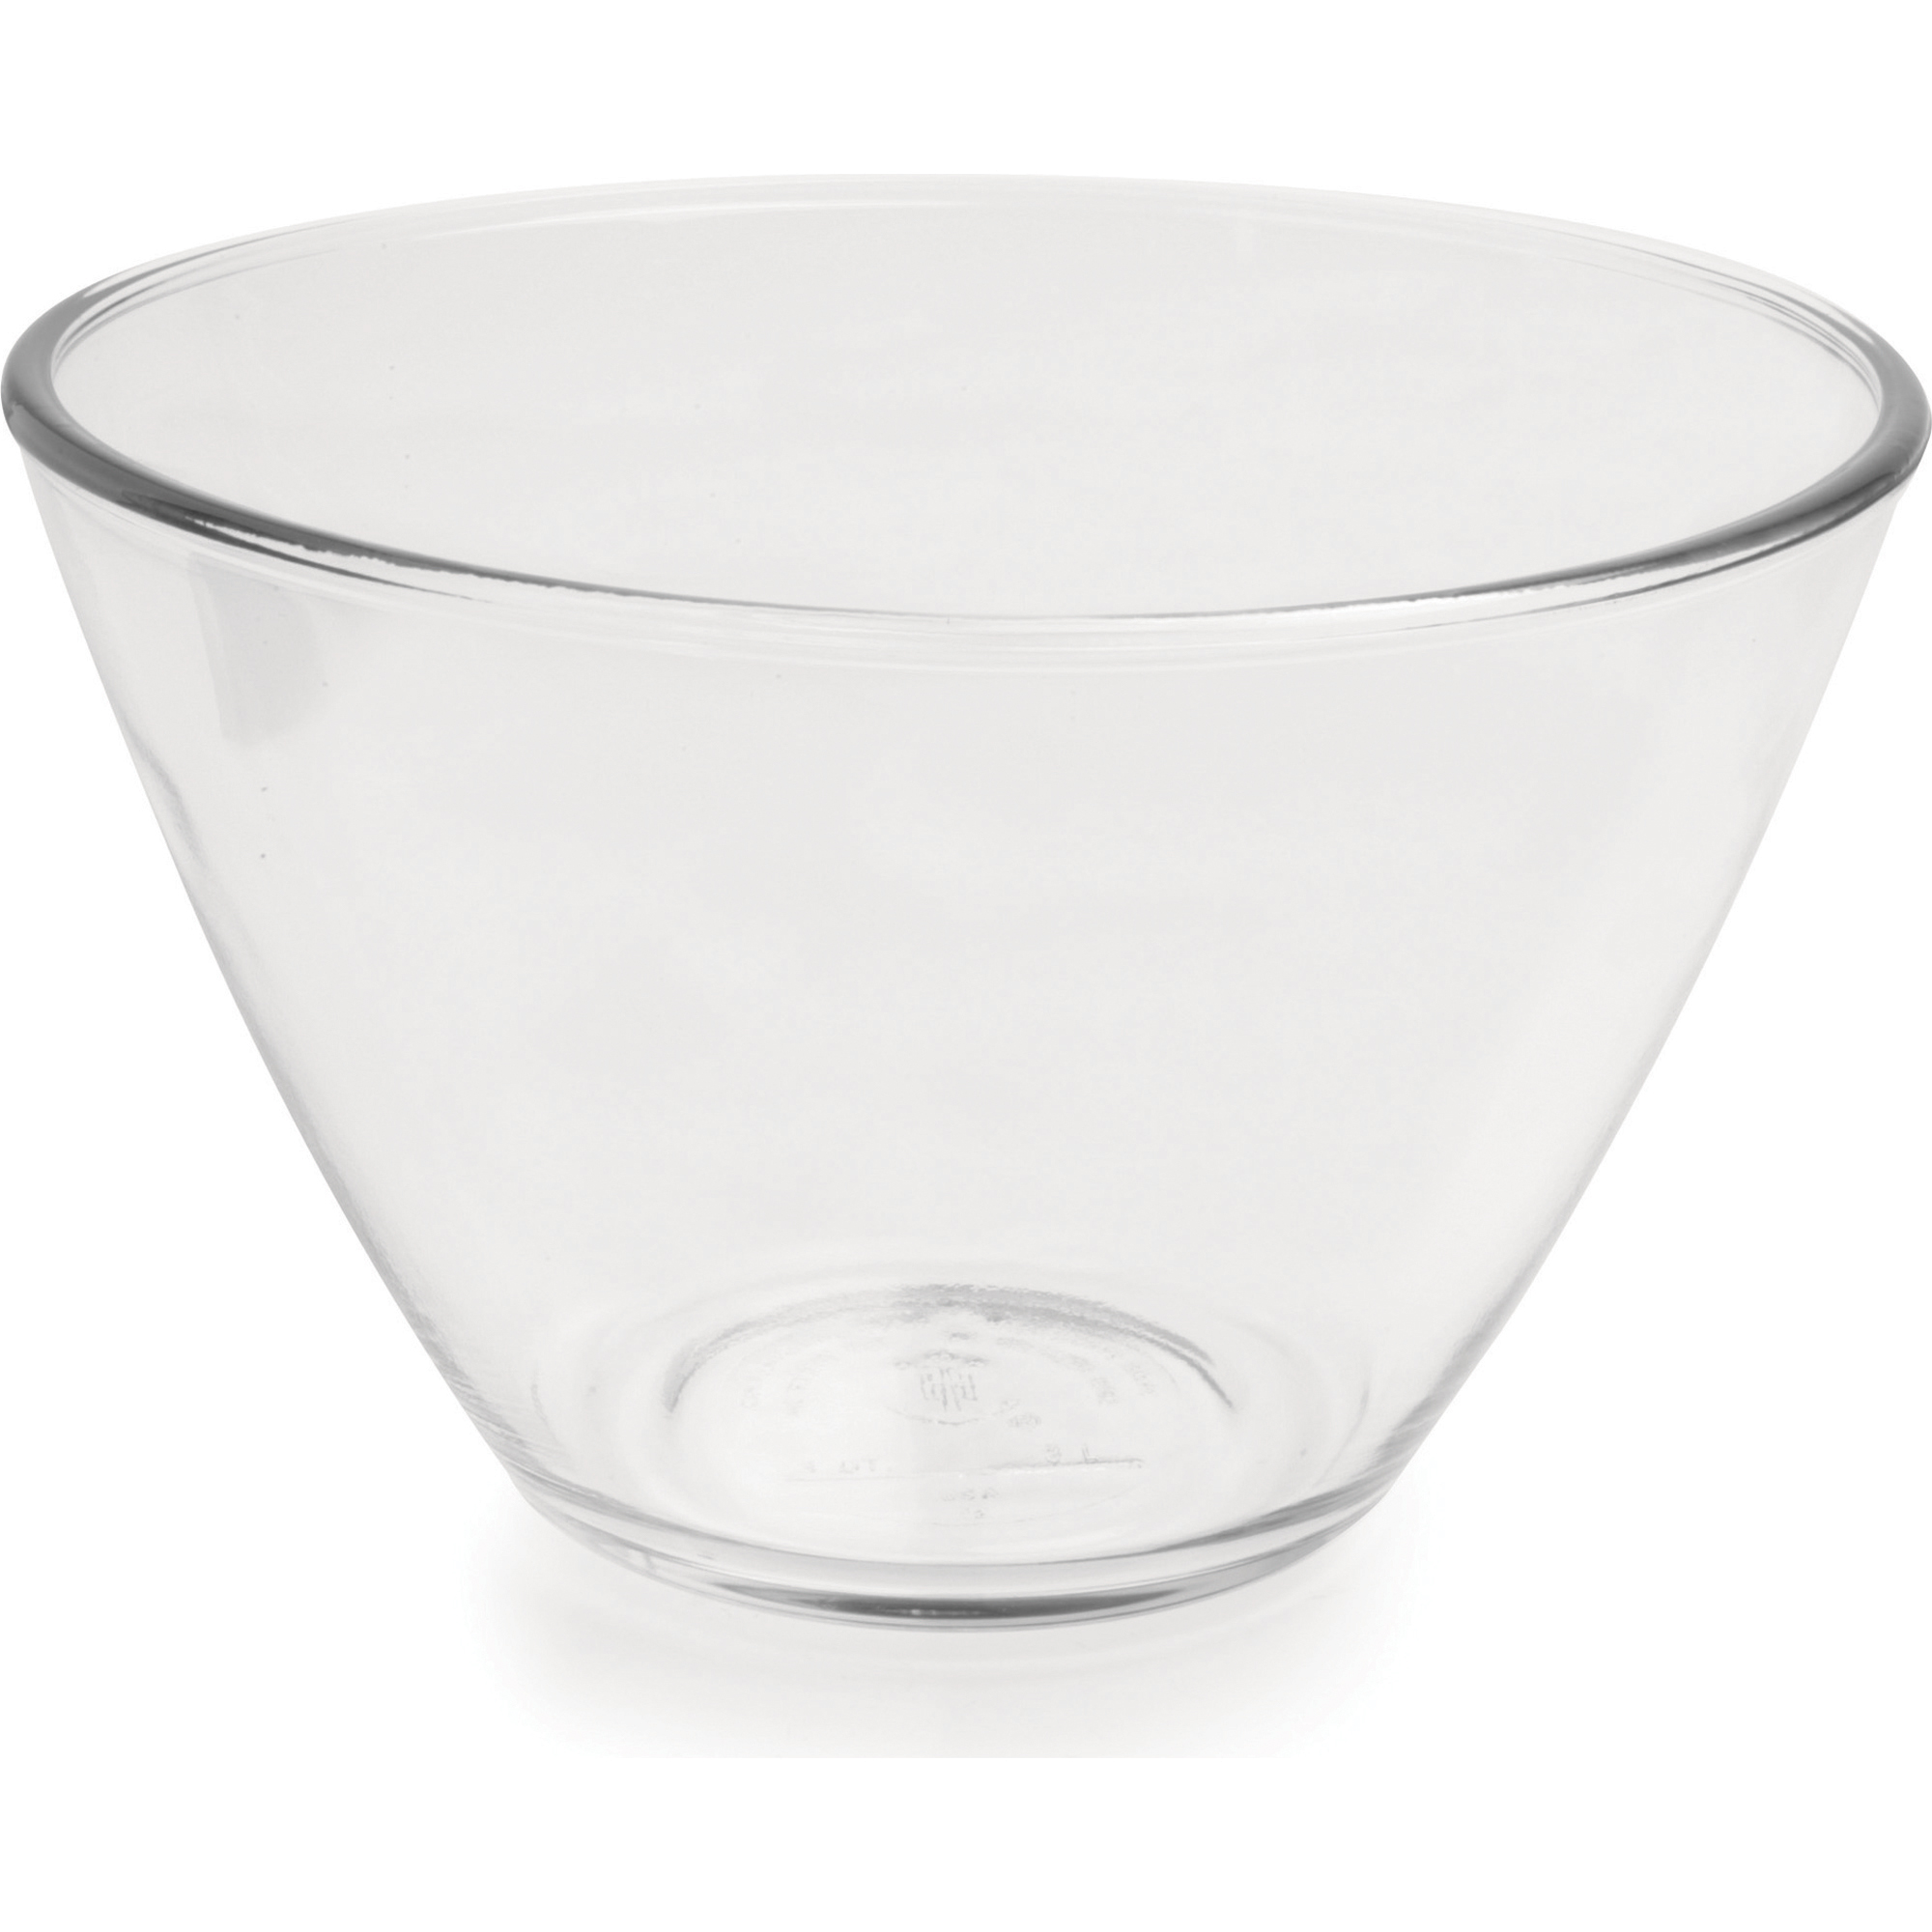 Anchor Hocking Contemporary 4-qt Serving Bowl by Anchor Hocking